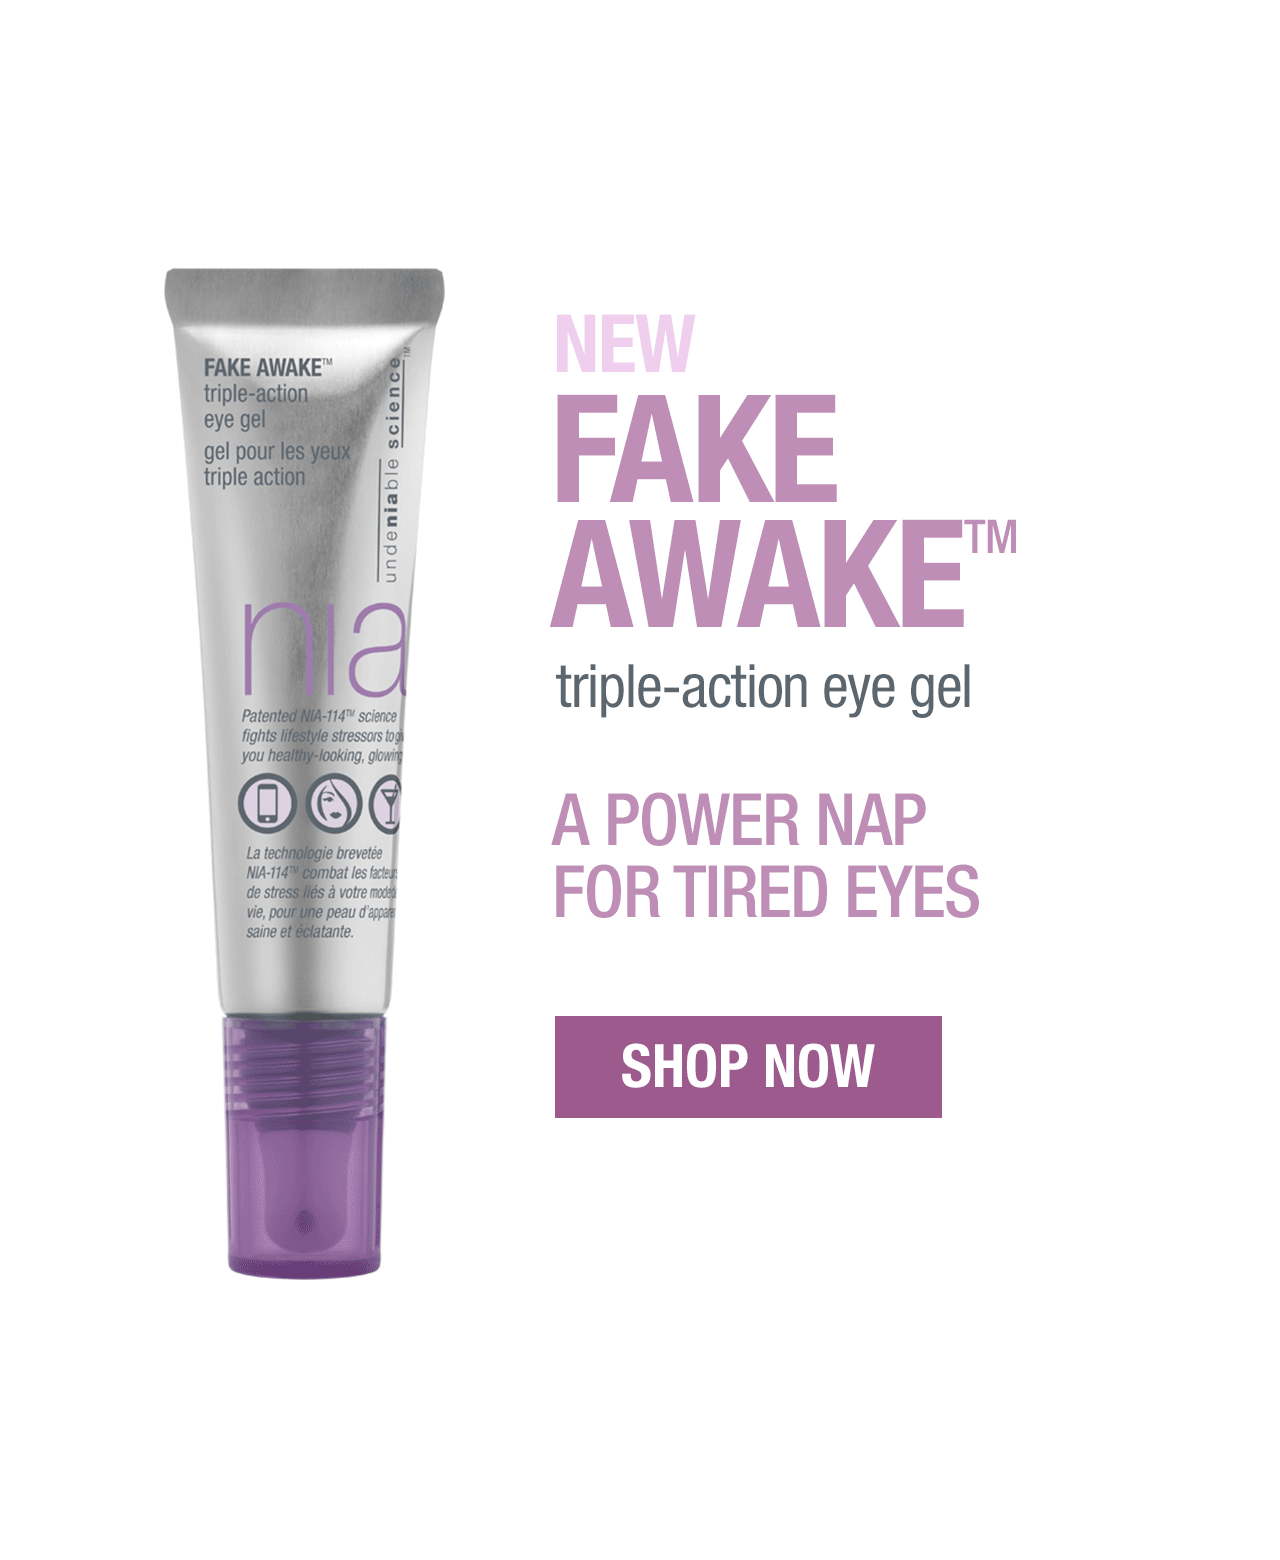 New fake awake triple action eye gel